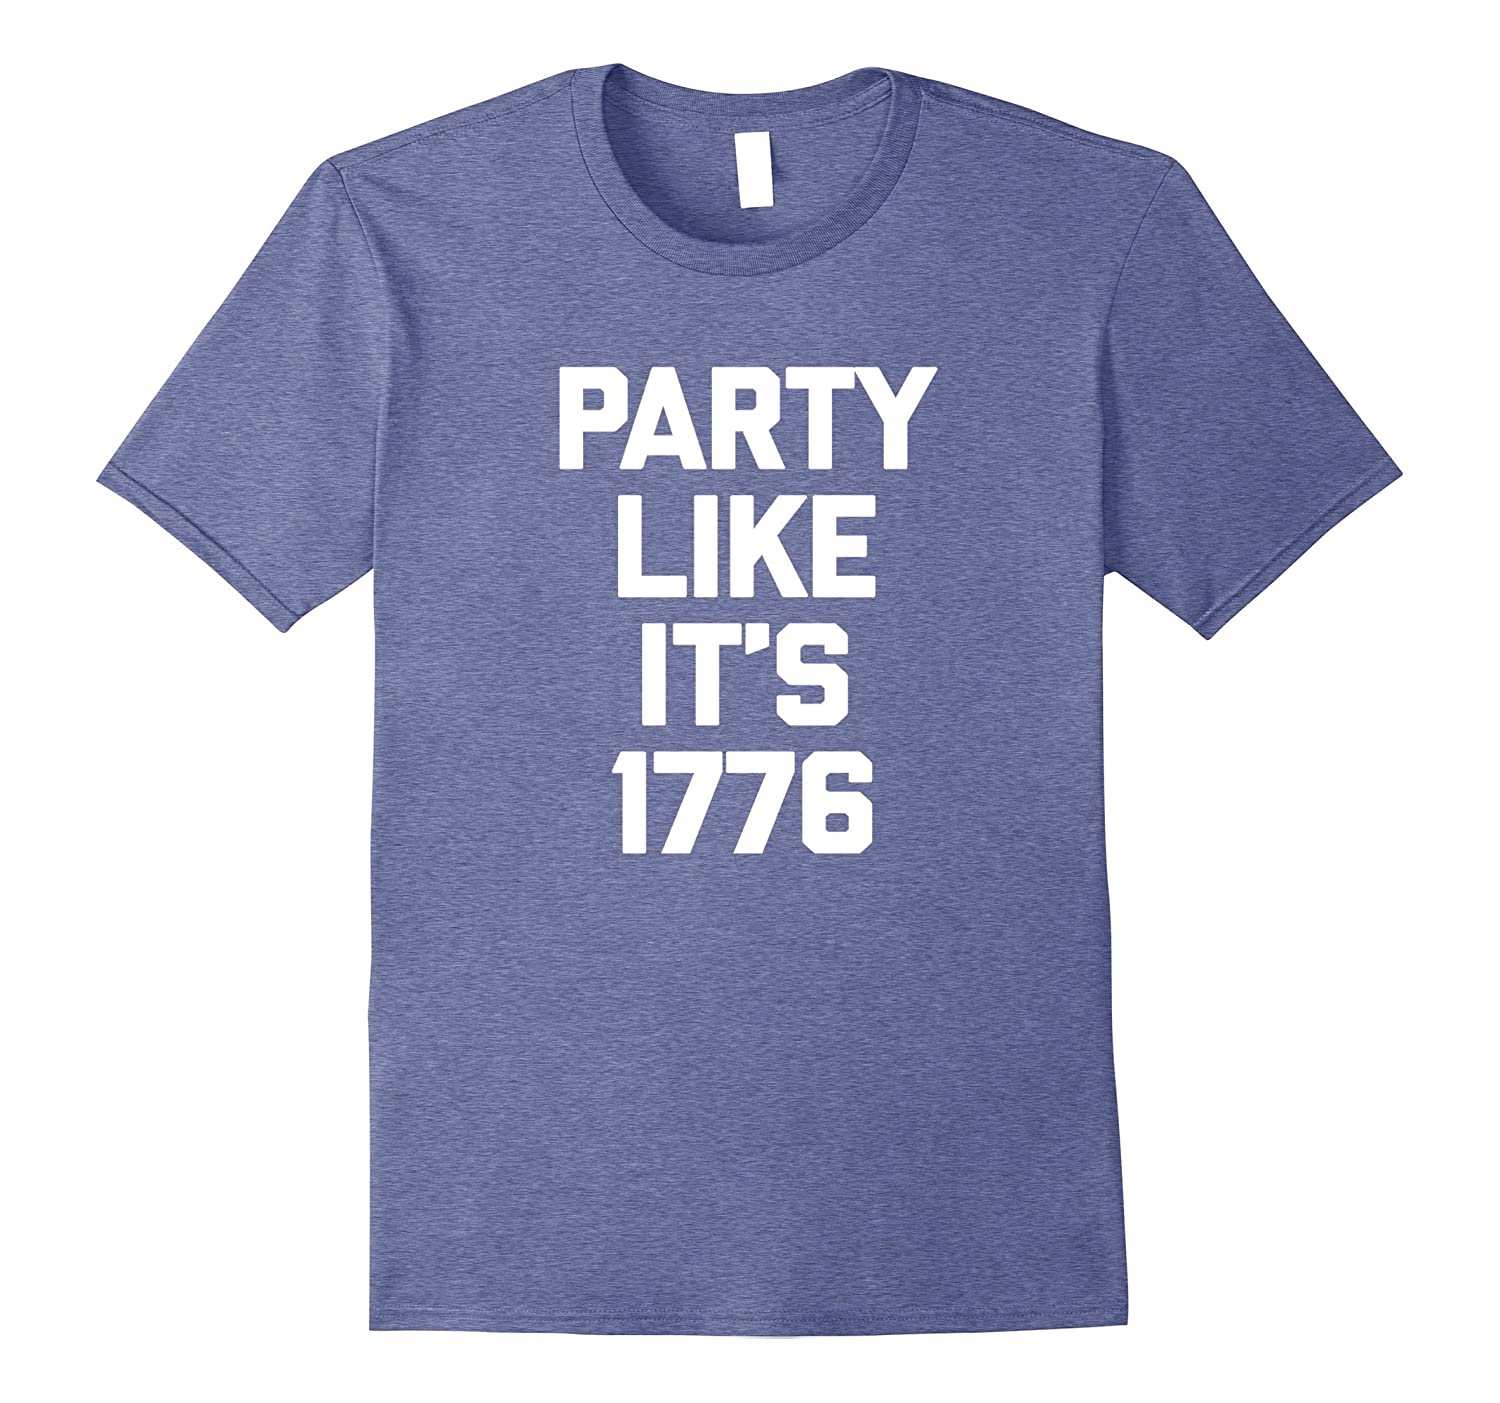 4th Of July Shirt: Party Like It's 1776 T-Shirt funny saying-TH